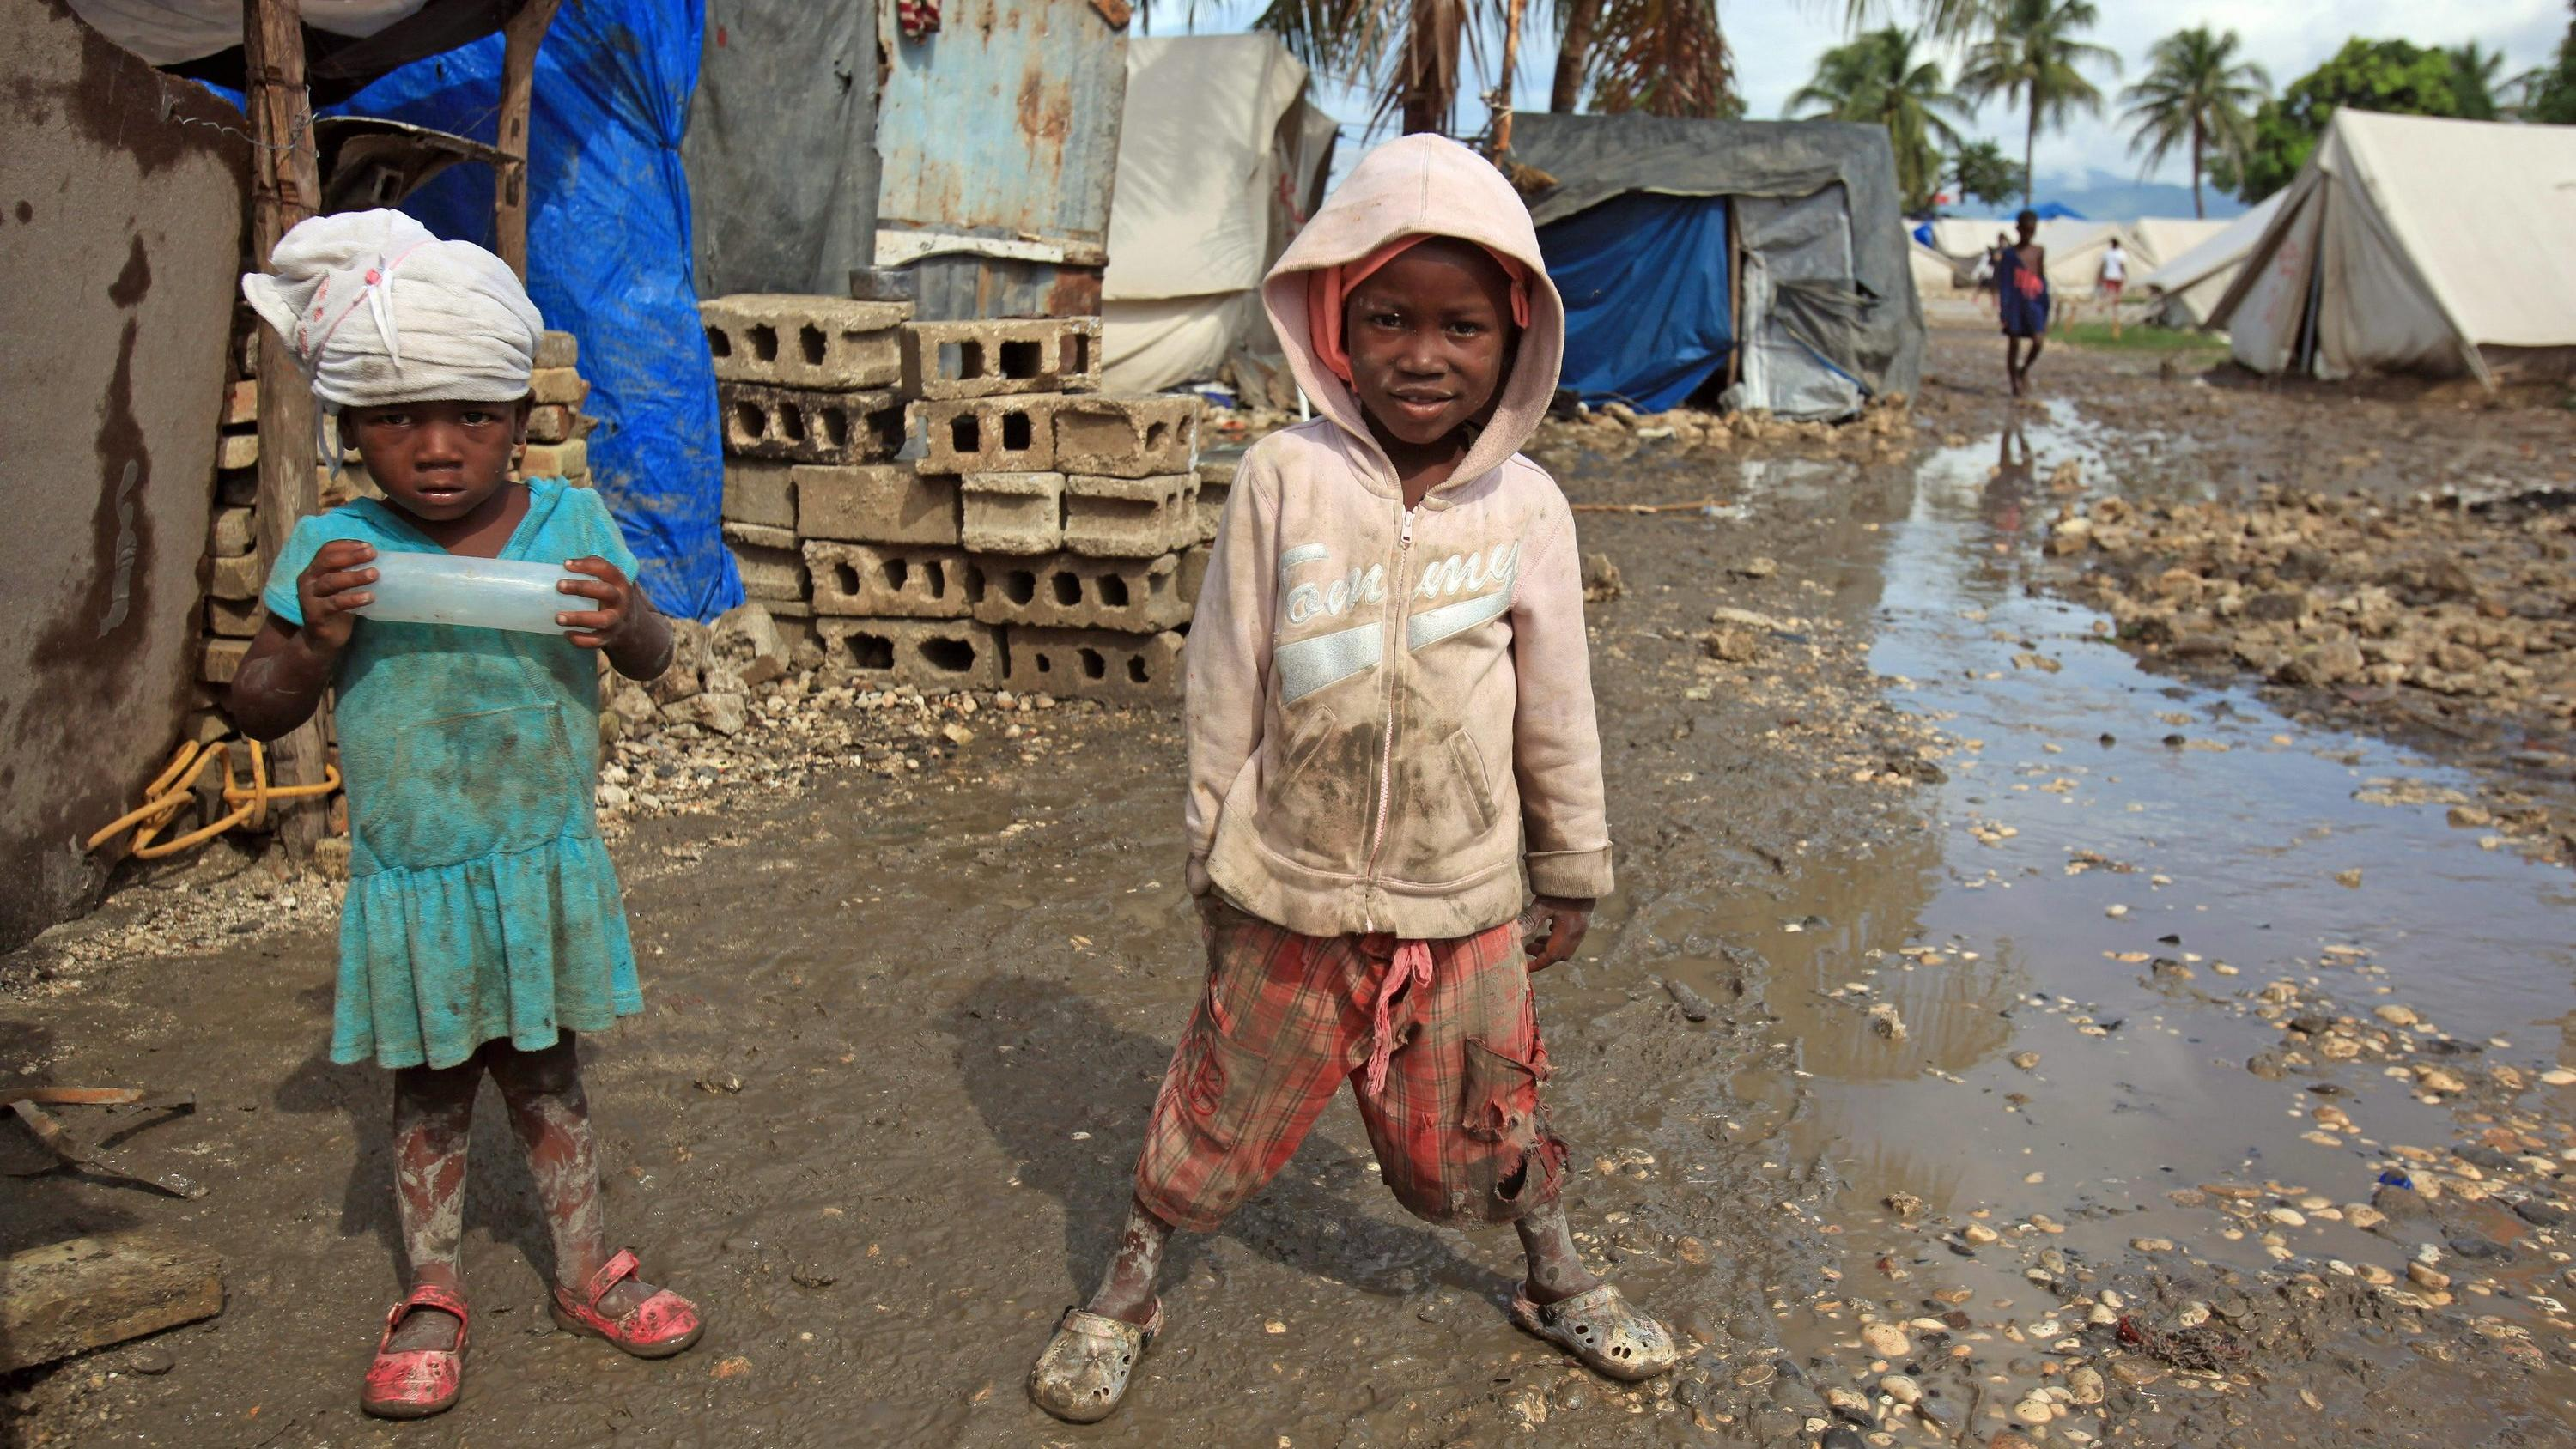 Two girls are seen at a refugee camp in Cite Soleil, located in Port-au-Prince, Haiti, 06 November 2010. Hurricane Tomas hit the country on 05 November, leaving five people dead, two missing and six injured, according to reports. EPA/ORLANDO BARRIA